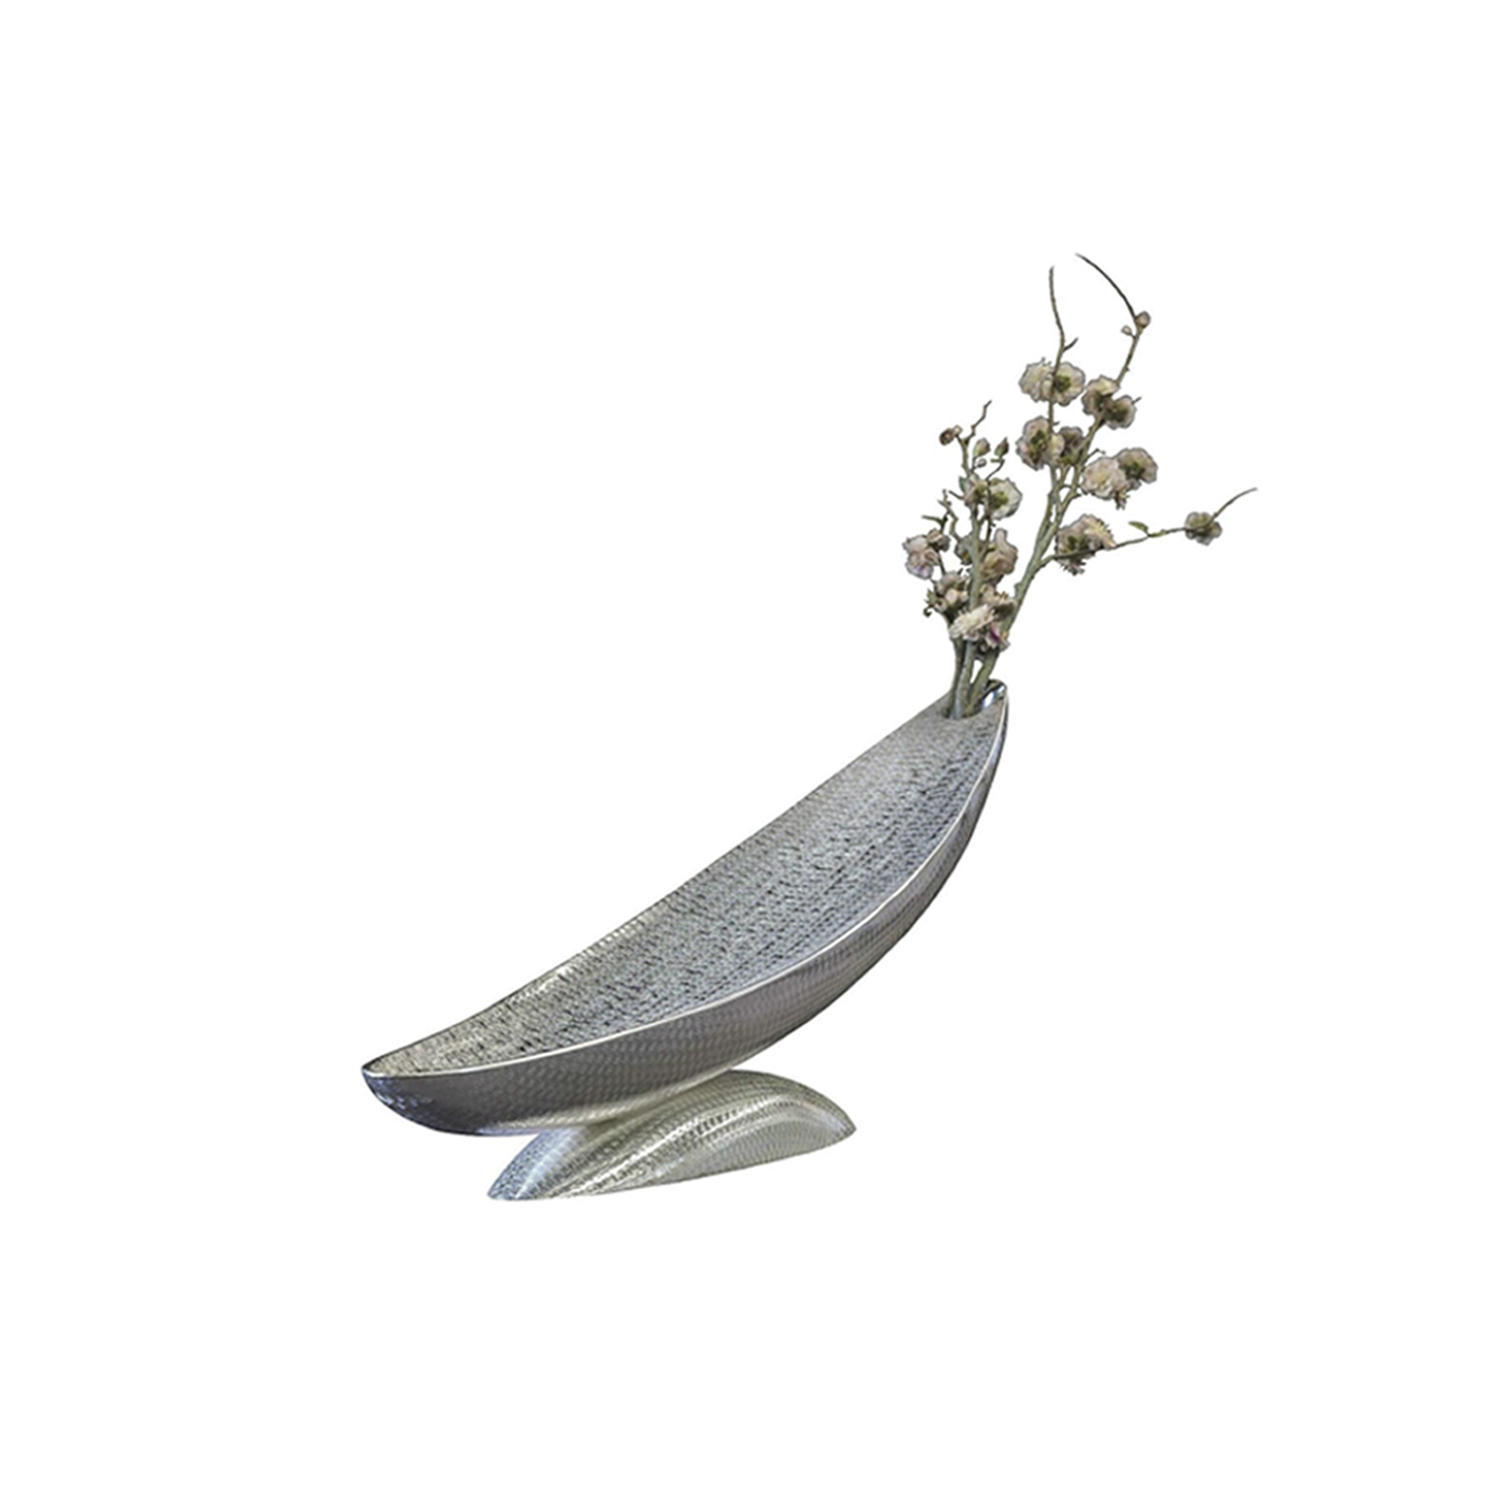 Sleeping Moon Vase Sculpture - This striking vase can double as centerpiece or sculptural decoration, to add modern elegance to an entryway, a living room, or a dining room. Inspired by the moon as seen when rising, its welcoming concave silhouette rests on a semi-spherical base. Both elements are made of silver-plated metal with a unique spiral decorative pattern throughout that reflects the surrounding light in a sophisticated way. The top of the piece features a hole, for cut flowers and other arrangements. | Matter of Stuff